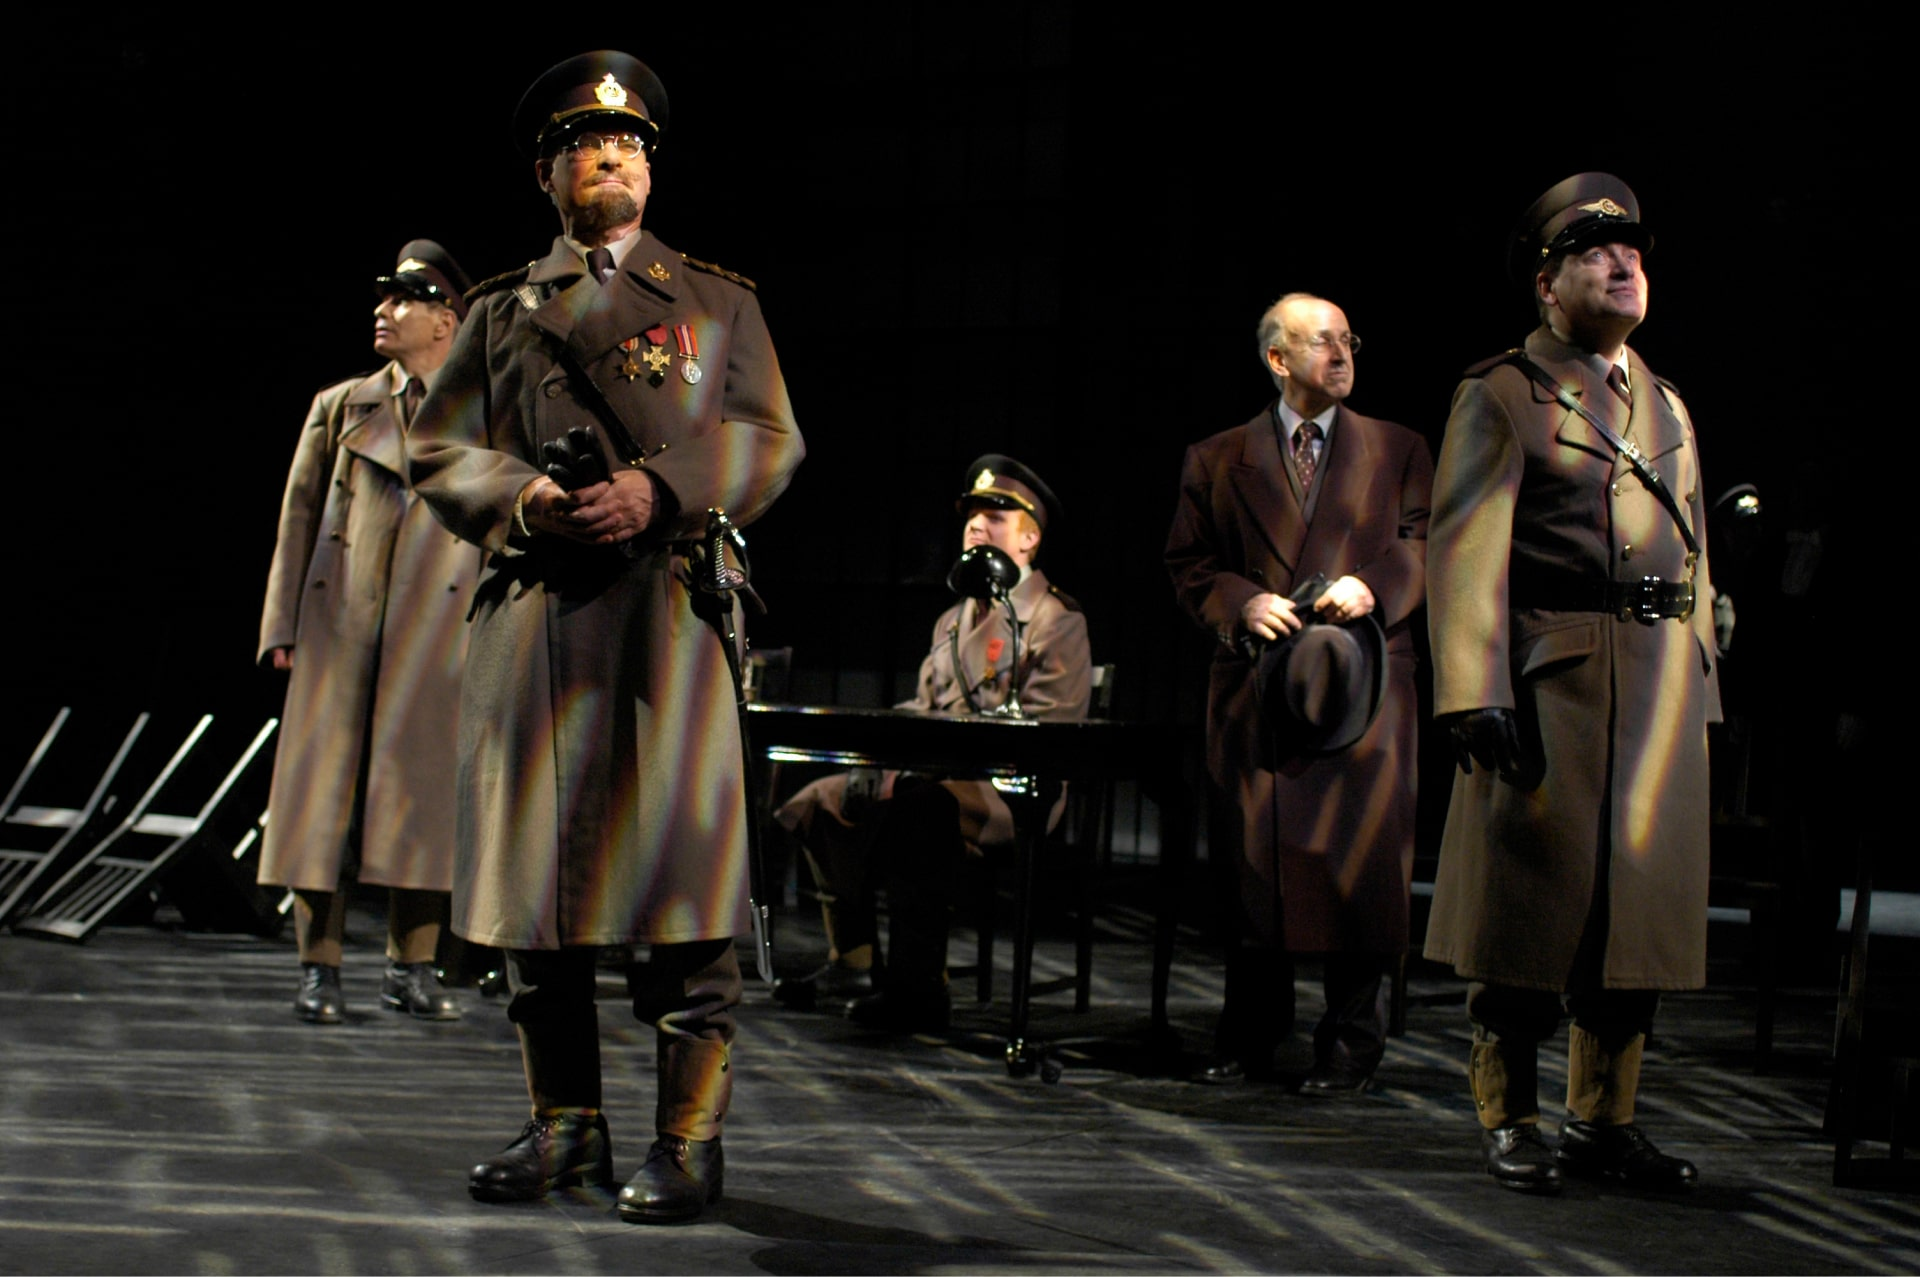 Soldiers in coats and hats stare into the distance under dappled light.